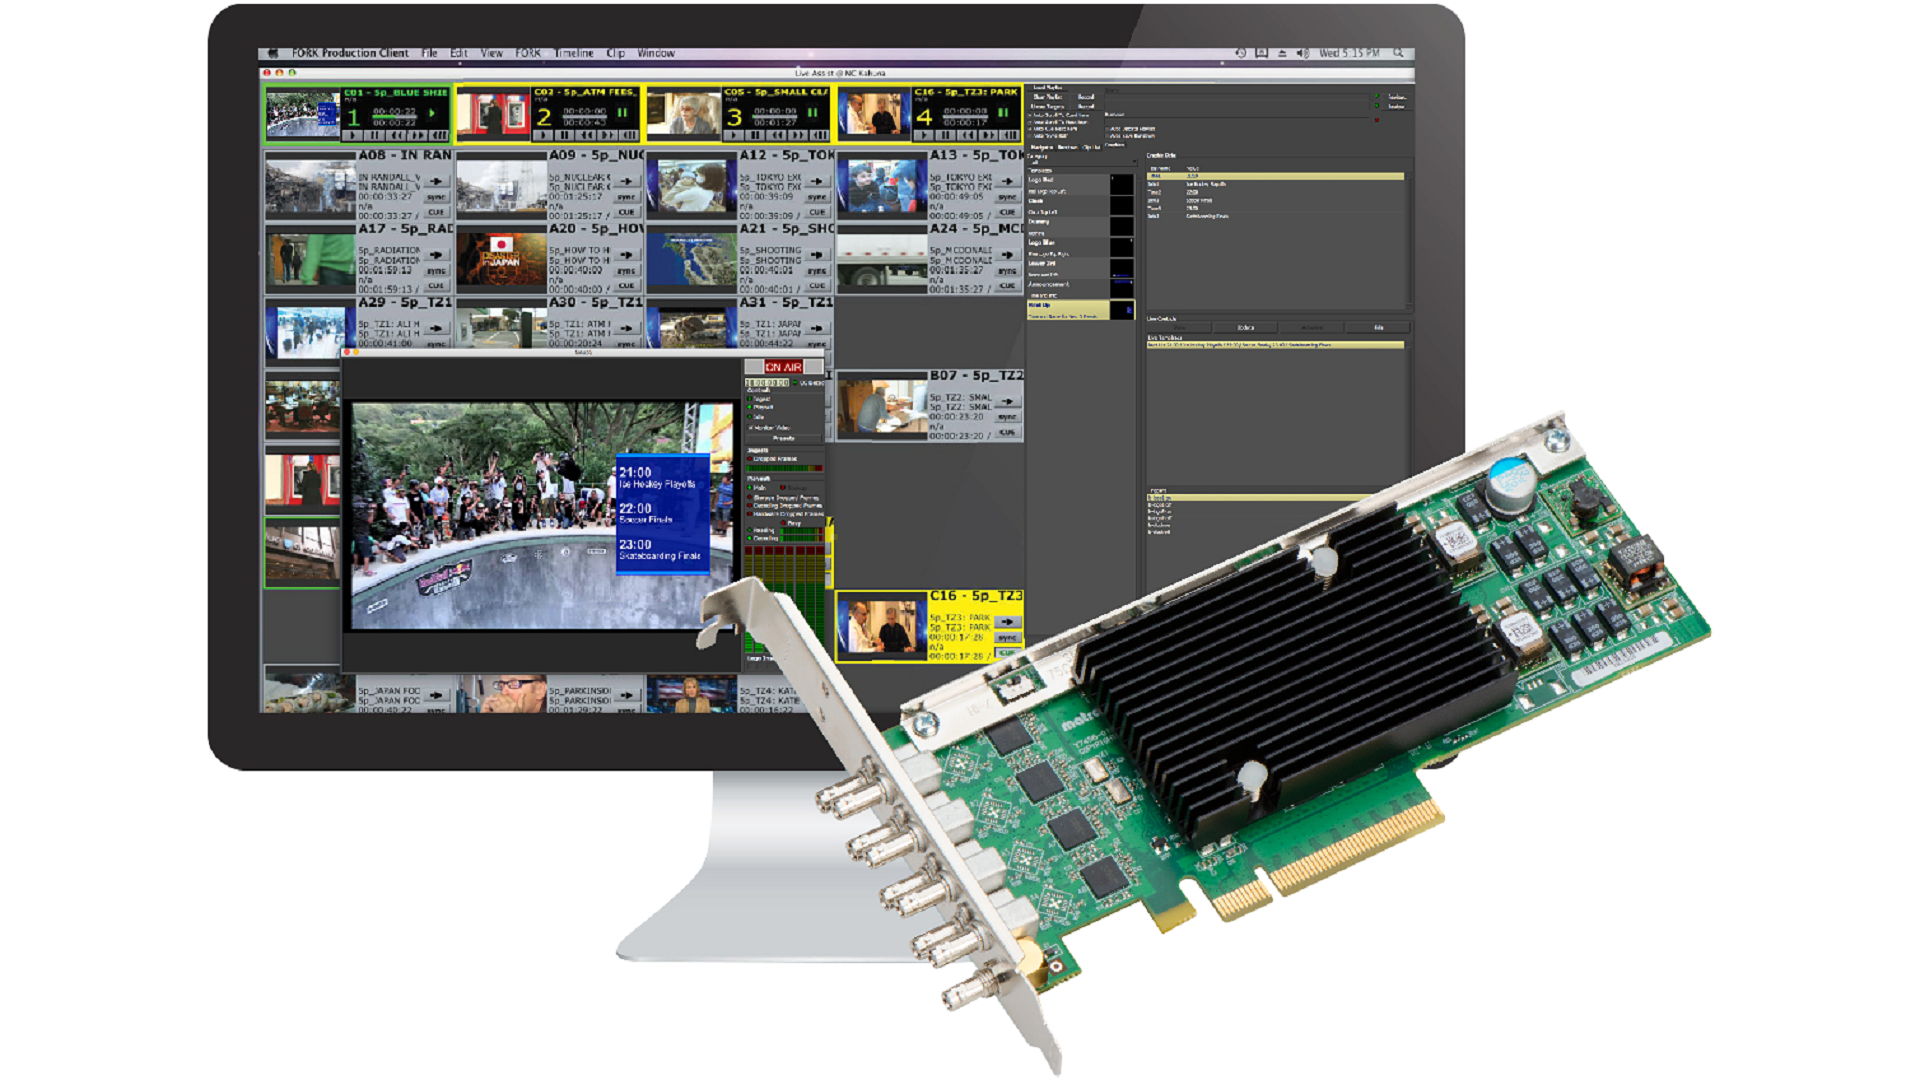 Primestream's FORK Software Now Supports the Matrox DSX LE4 SDI I/O Video Card